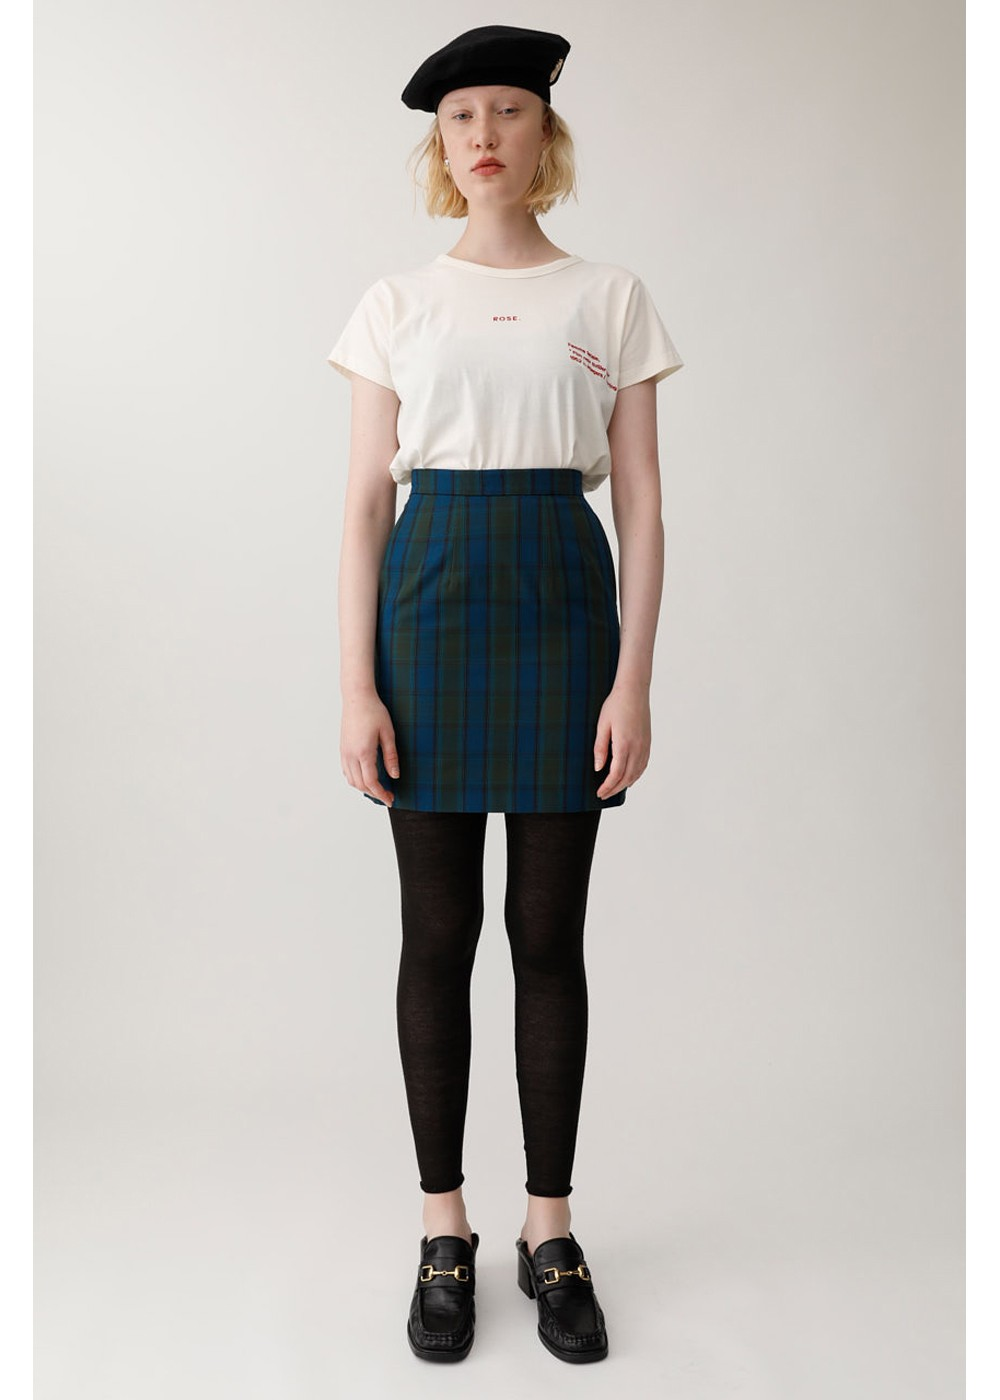 【最大60%OFF】SHADOW CHECK MINI SKIRT|柄GRN|ミニスカート|MOUSSY